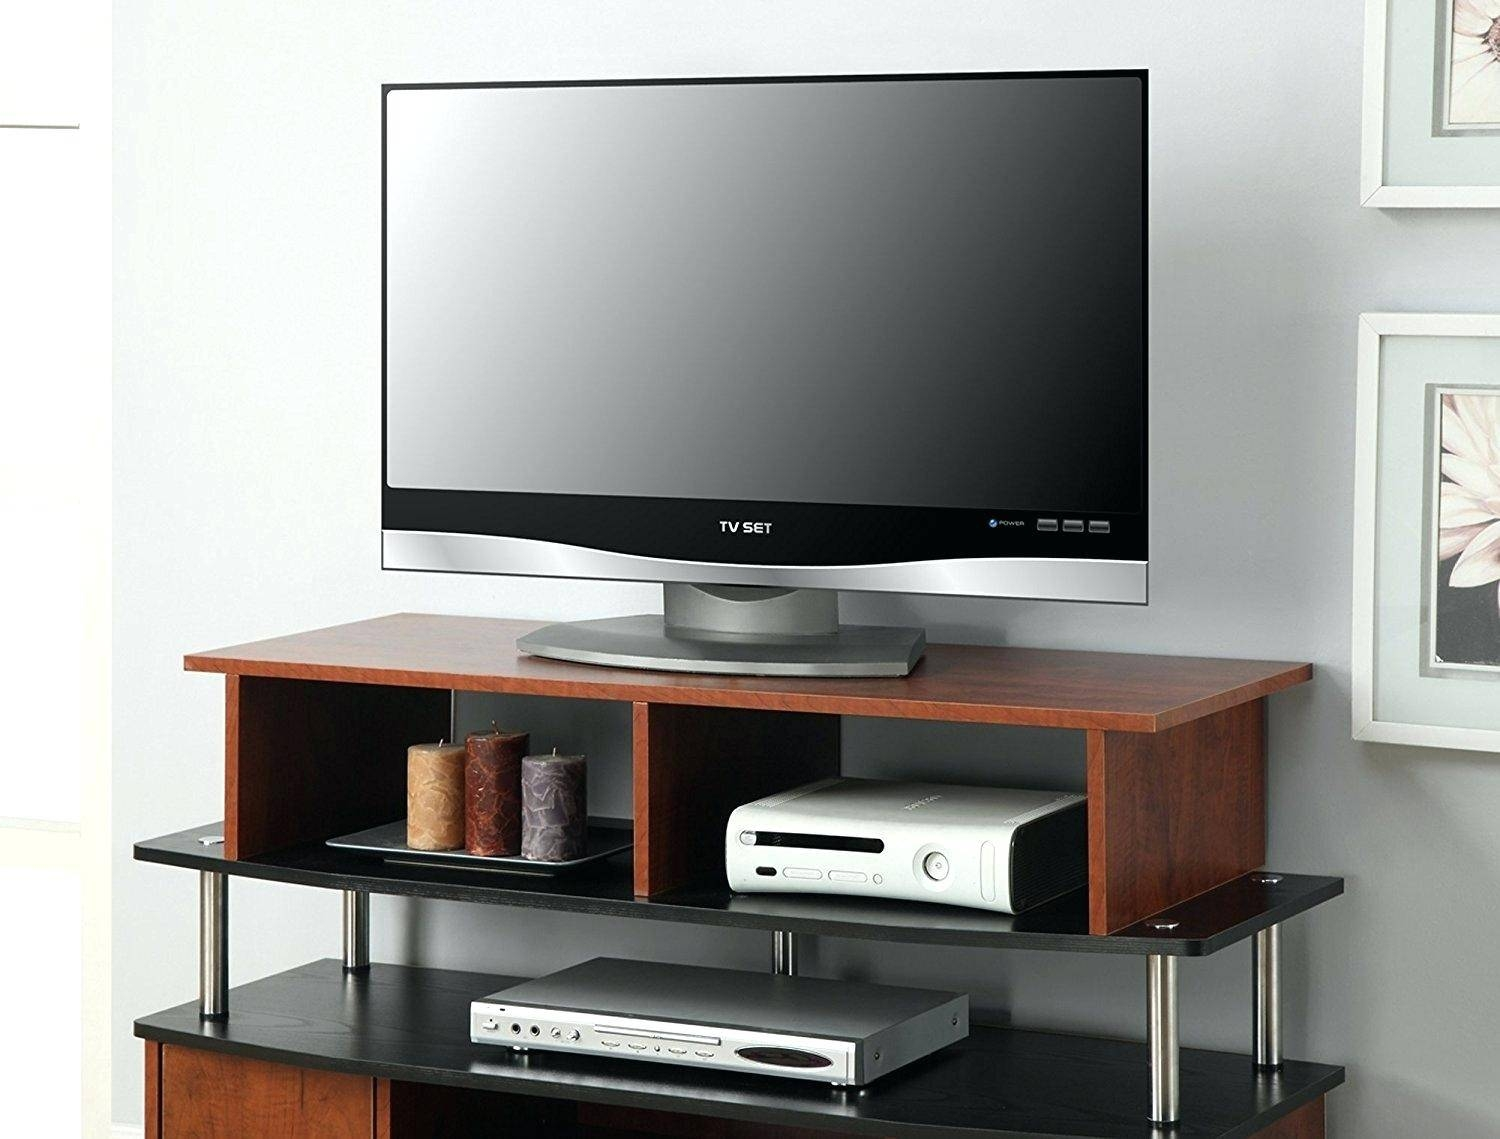 Tv Stand : Fitueyes 167 Inch White 2 Tiers Monitor Stand Computer intended for Tv Riser Stand (Image 14 of 15)